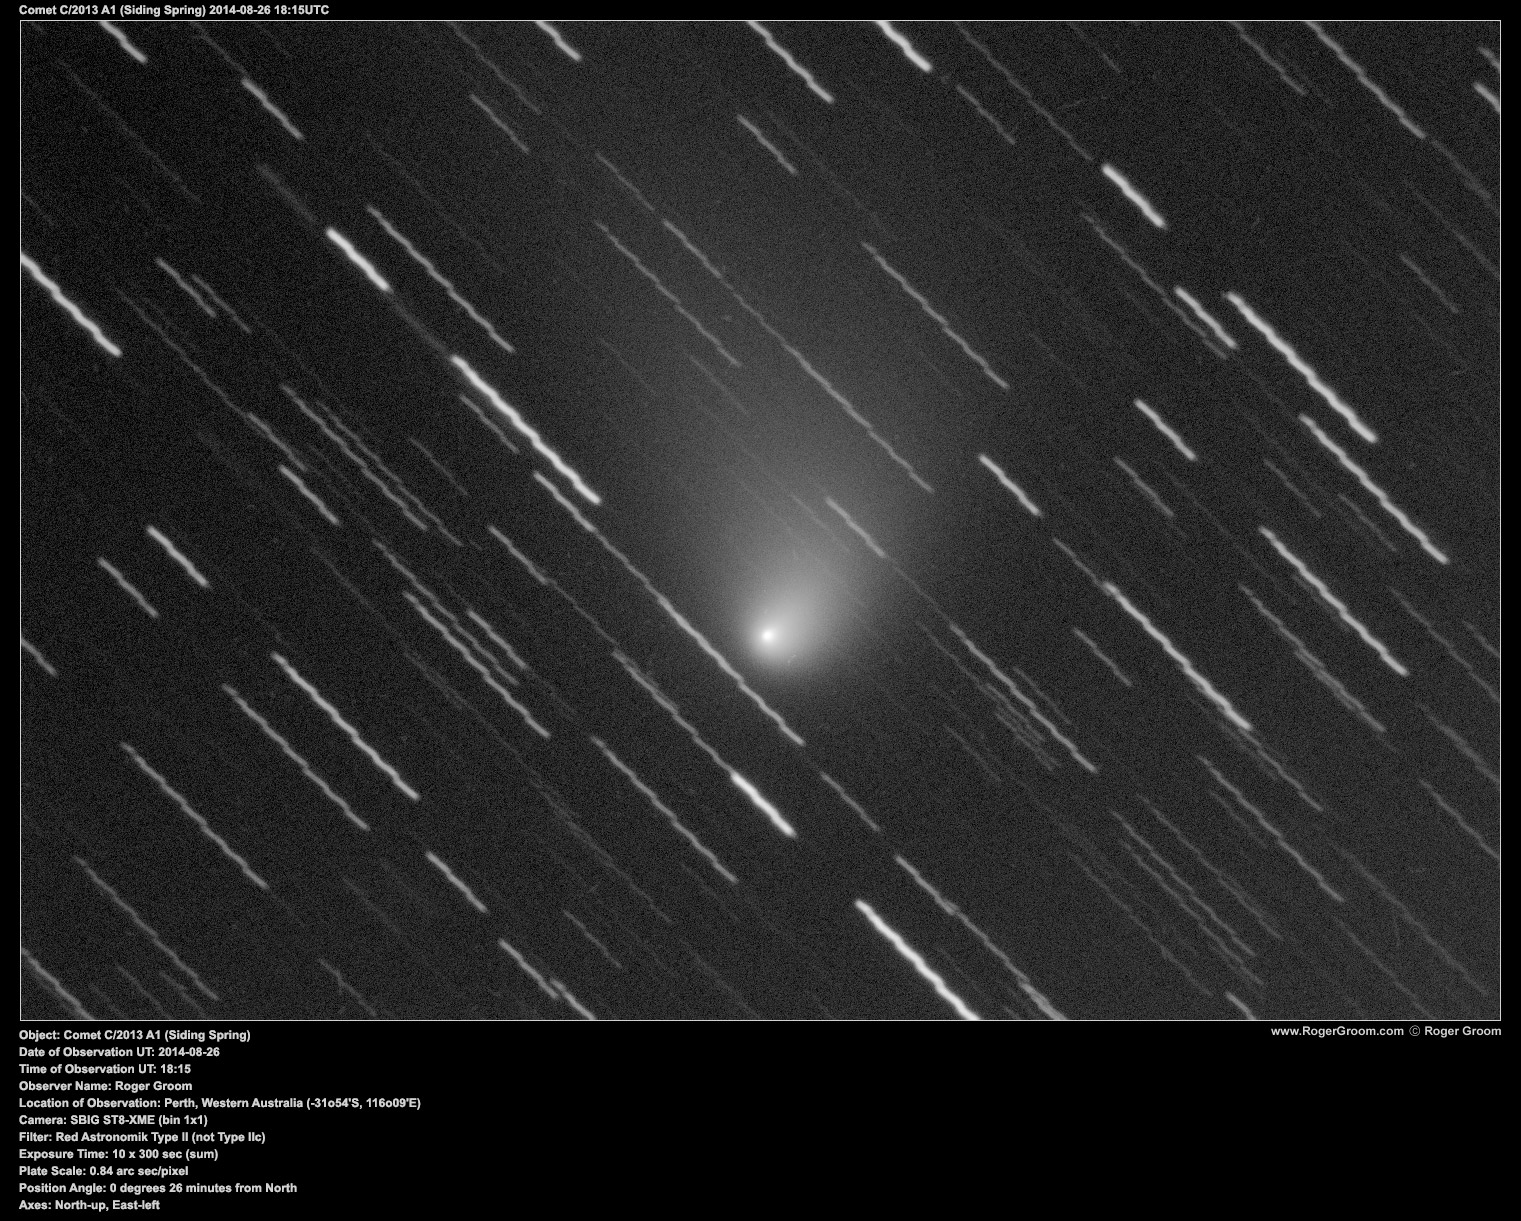 Object: Comet C/2013 A1 (Siding Spring) Date of Observation UT: 2014-08-26 Time of Observation UT: 18:15 Observer Name: Roger Groom Location of Observation: Perth, Western Australia (-31o54'S, 116o09'E) Camera: SBIG ST8-XME (bin 1x1) Filter: Red Astronomik Type II (not Type IIc) Exposure Time: 10 x 300 sec (sum) Plate Scale: 0.84 arc sec/pixel Position Angle: 0 degrees 26 minutes from North Axes: North-up, East-left